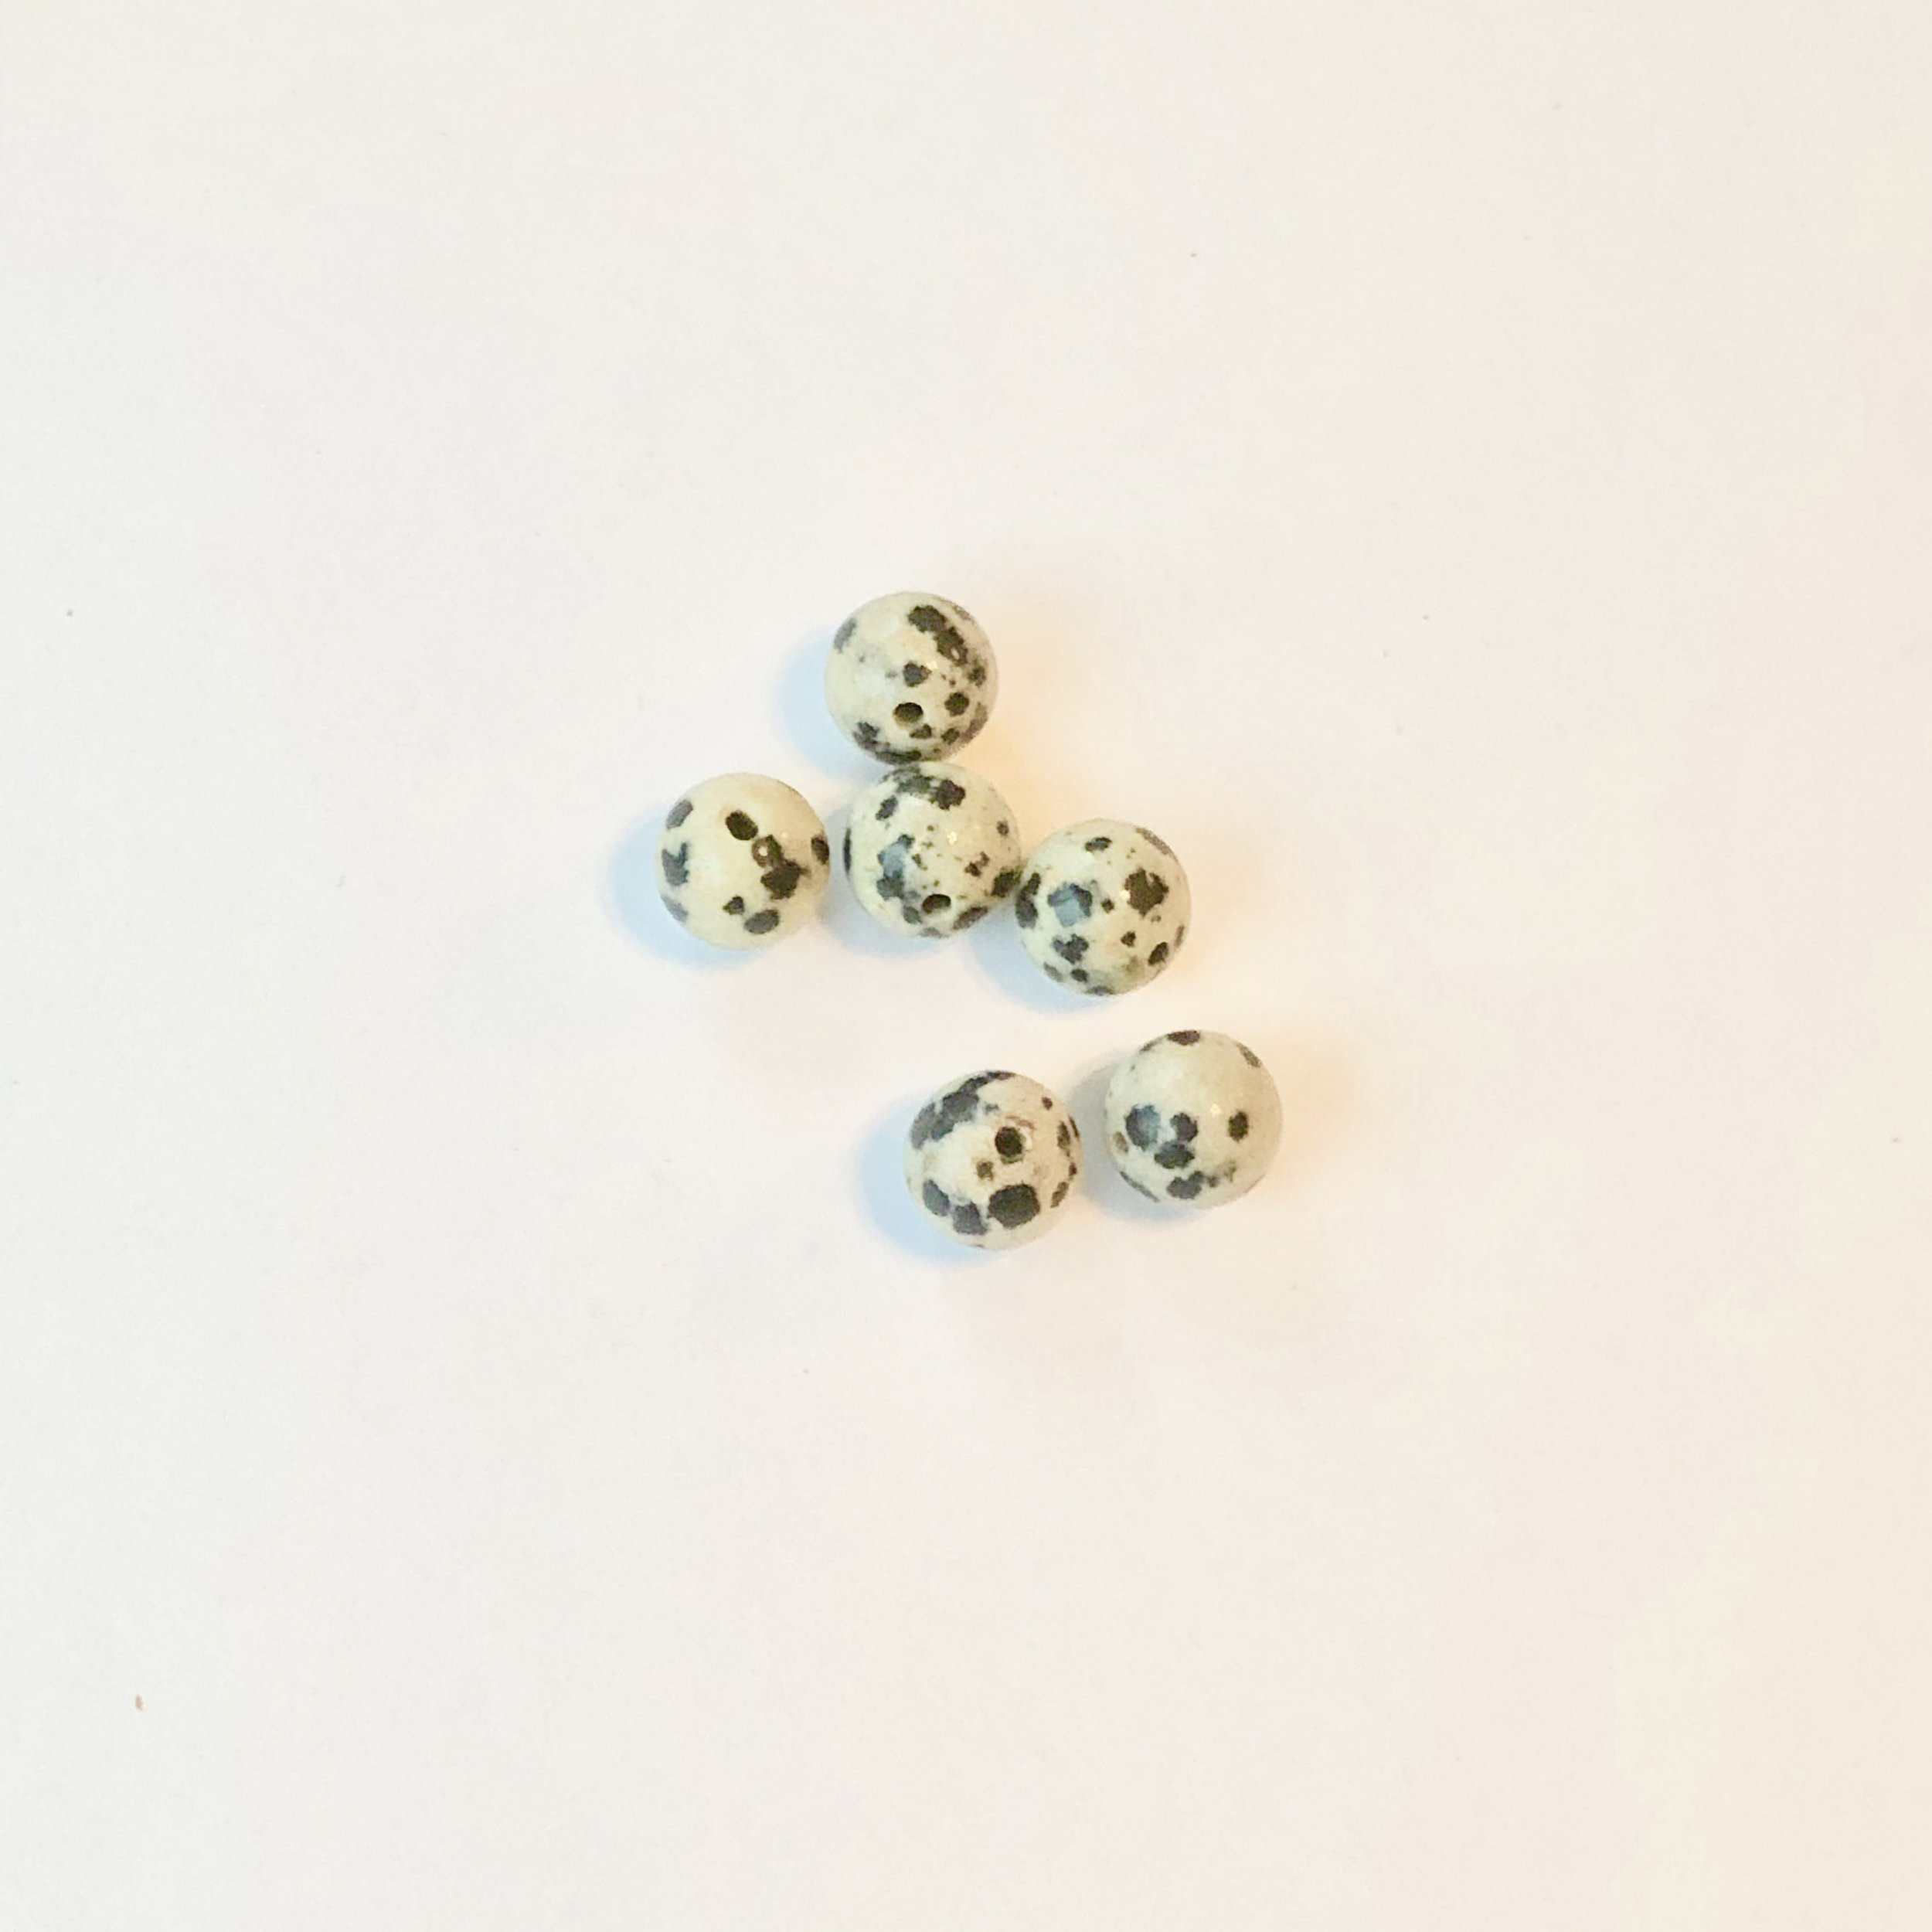 Dalmatian Jasper: Encourages playfulness. Fortifying, Encourages fidelity and emotional balance.